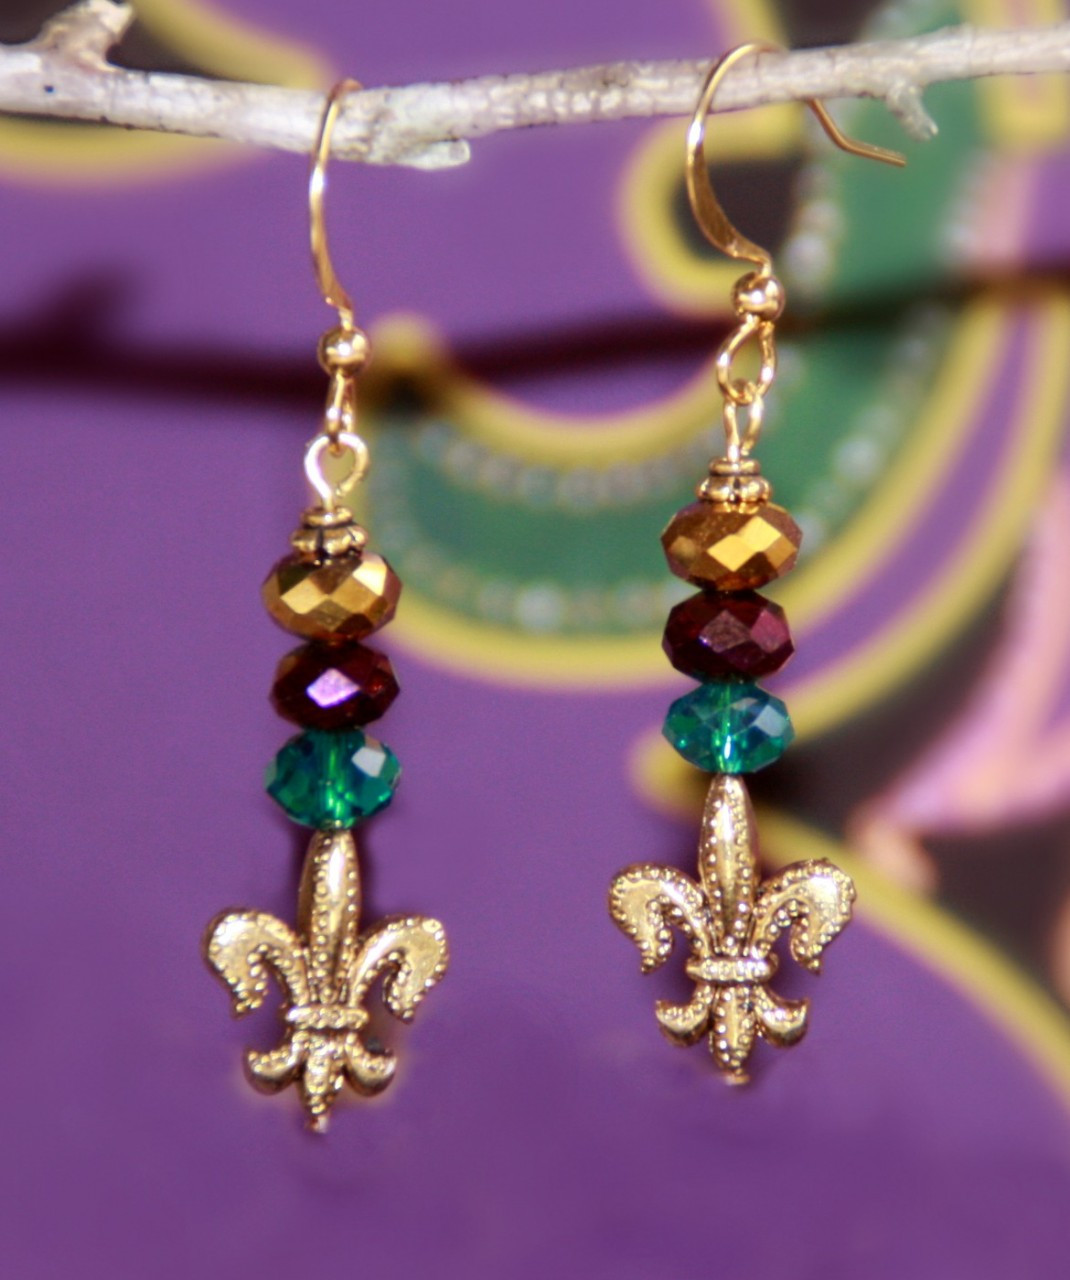 FER-249 Mardi Gras color Fleur de Lis Earrings